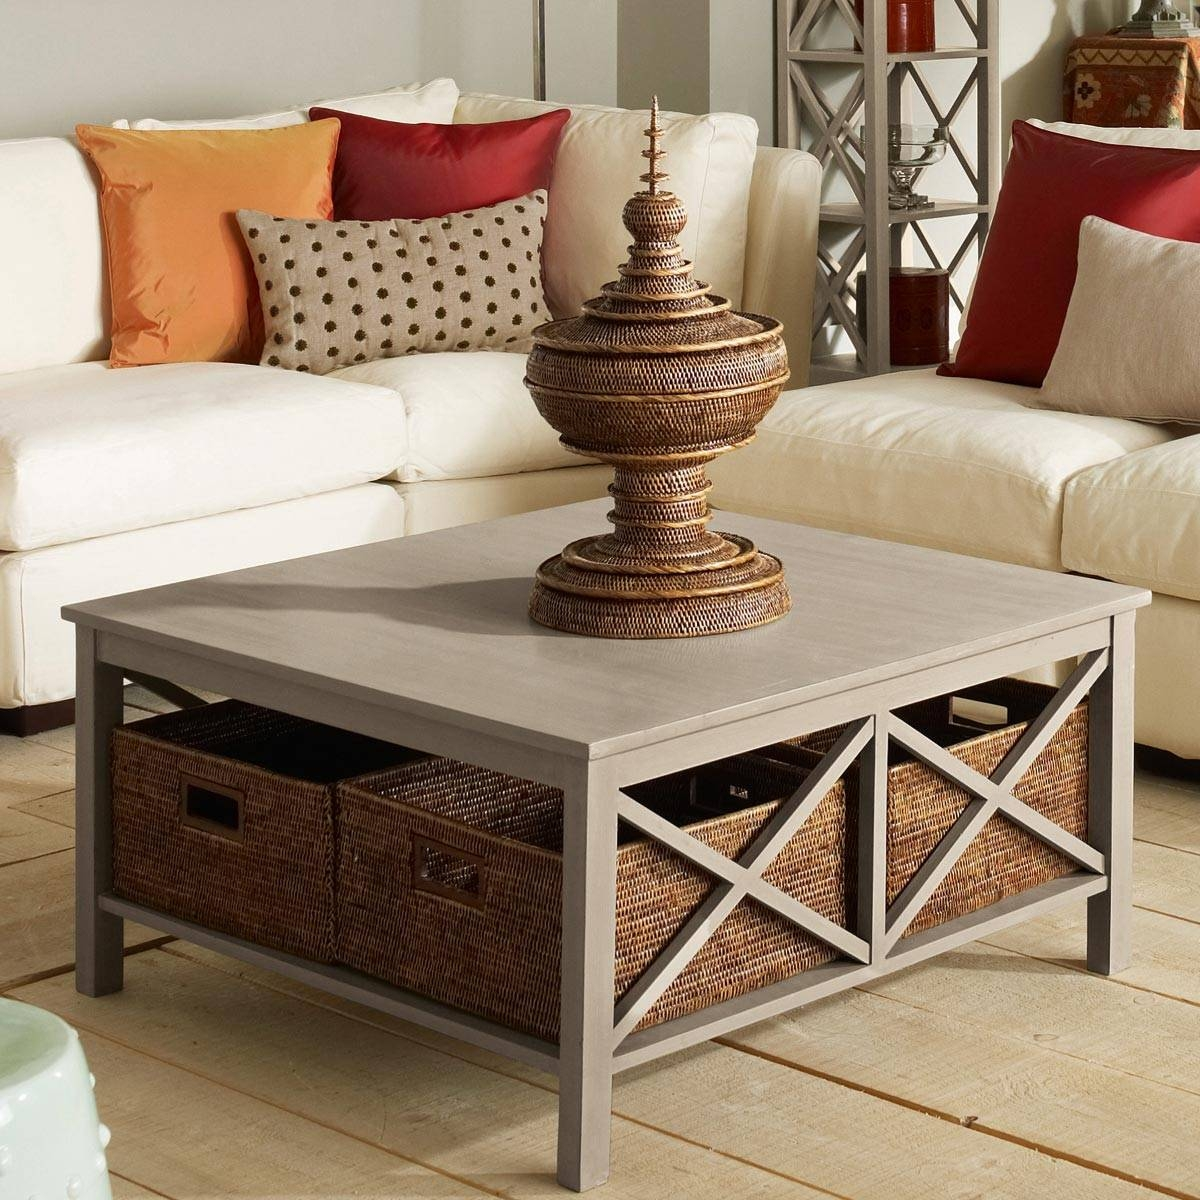 American Drew Camden Black Coffee Table With Wicker Baskets With Regard To Coffee Table With Wicker Basket Storage (View 10 of 30)